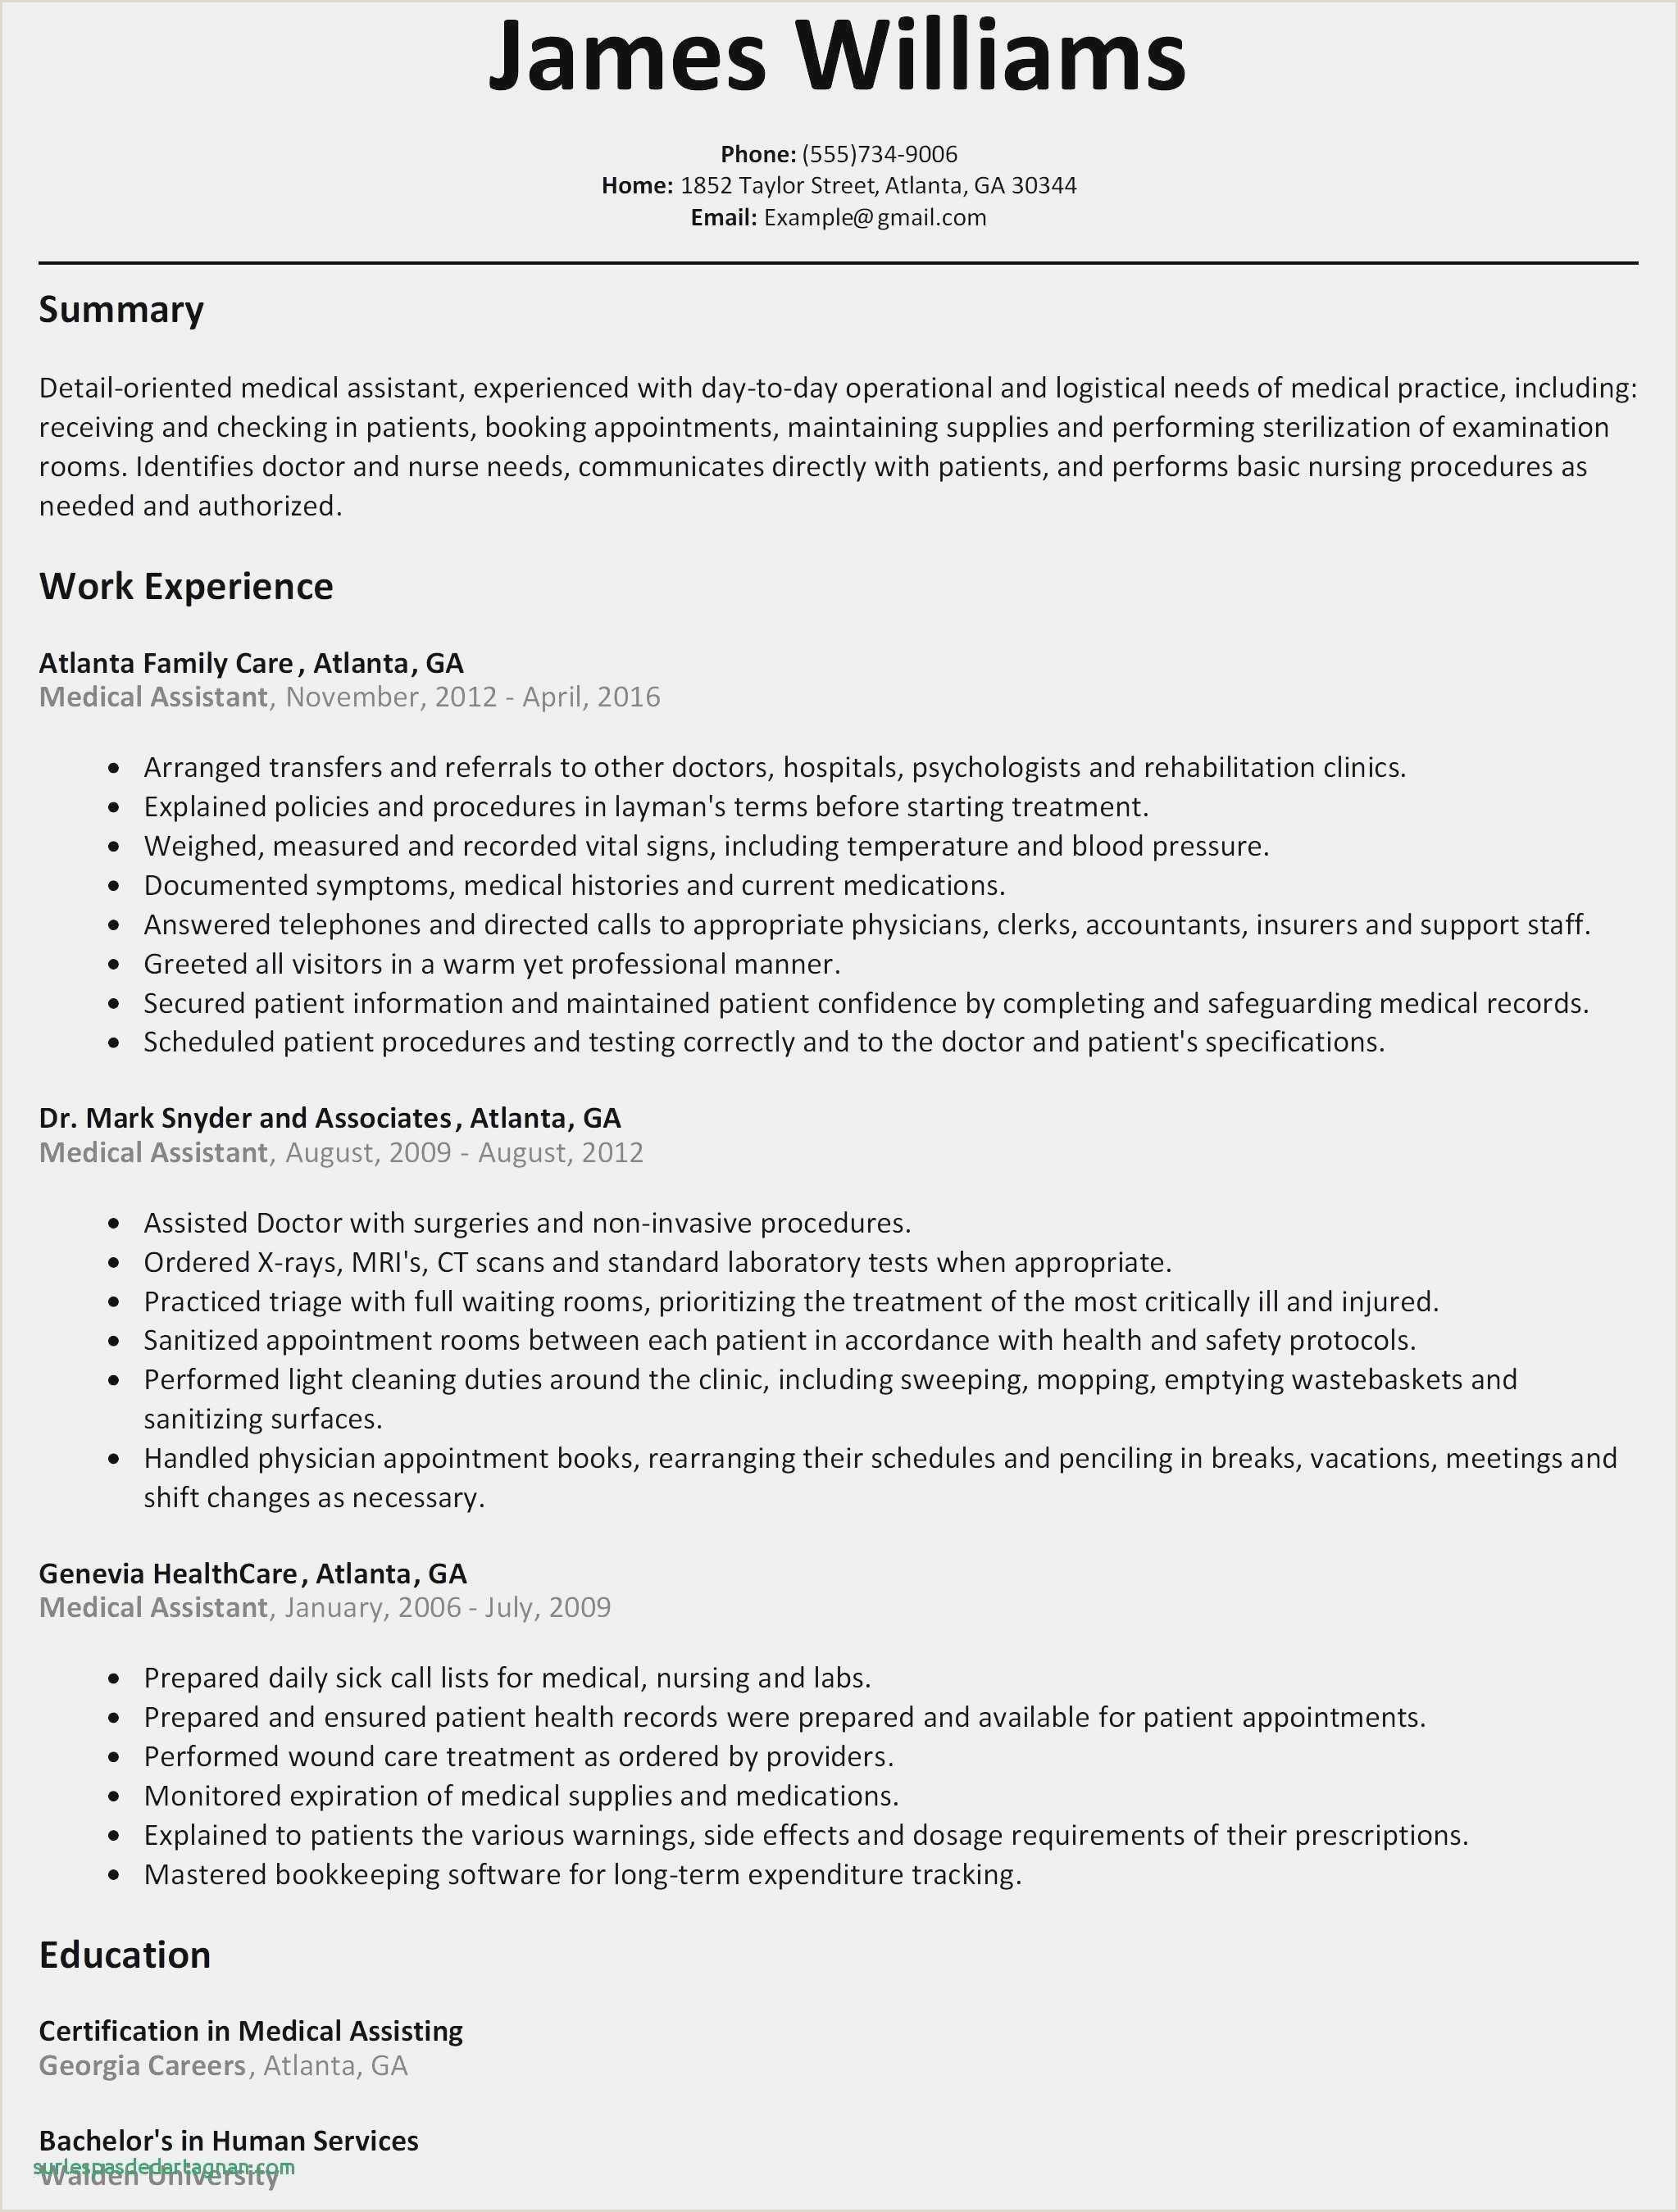 Resume Samples for Healthcare Professionals Free Download 60 Free Professional Resume Templates Free